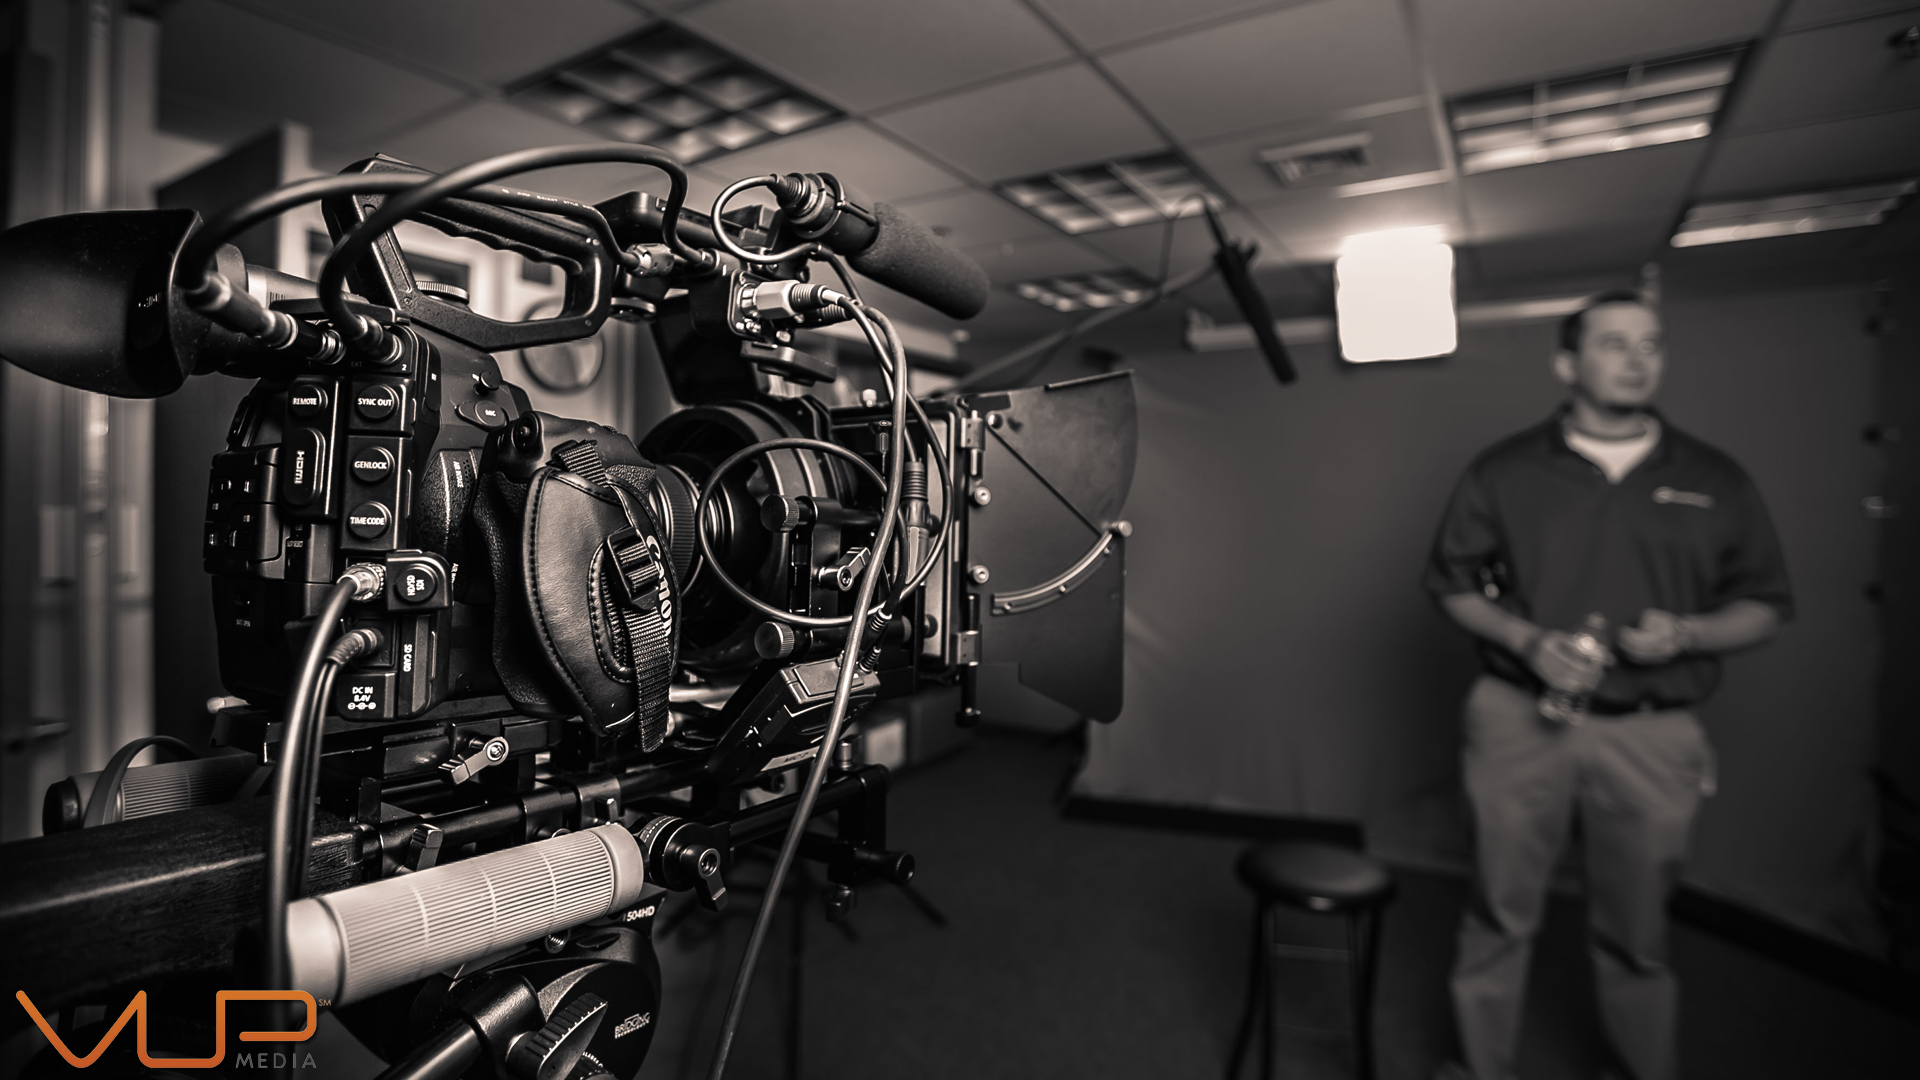 What Types of Video Do We Offer?